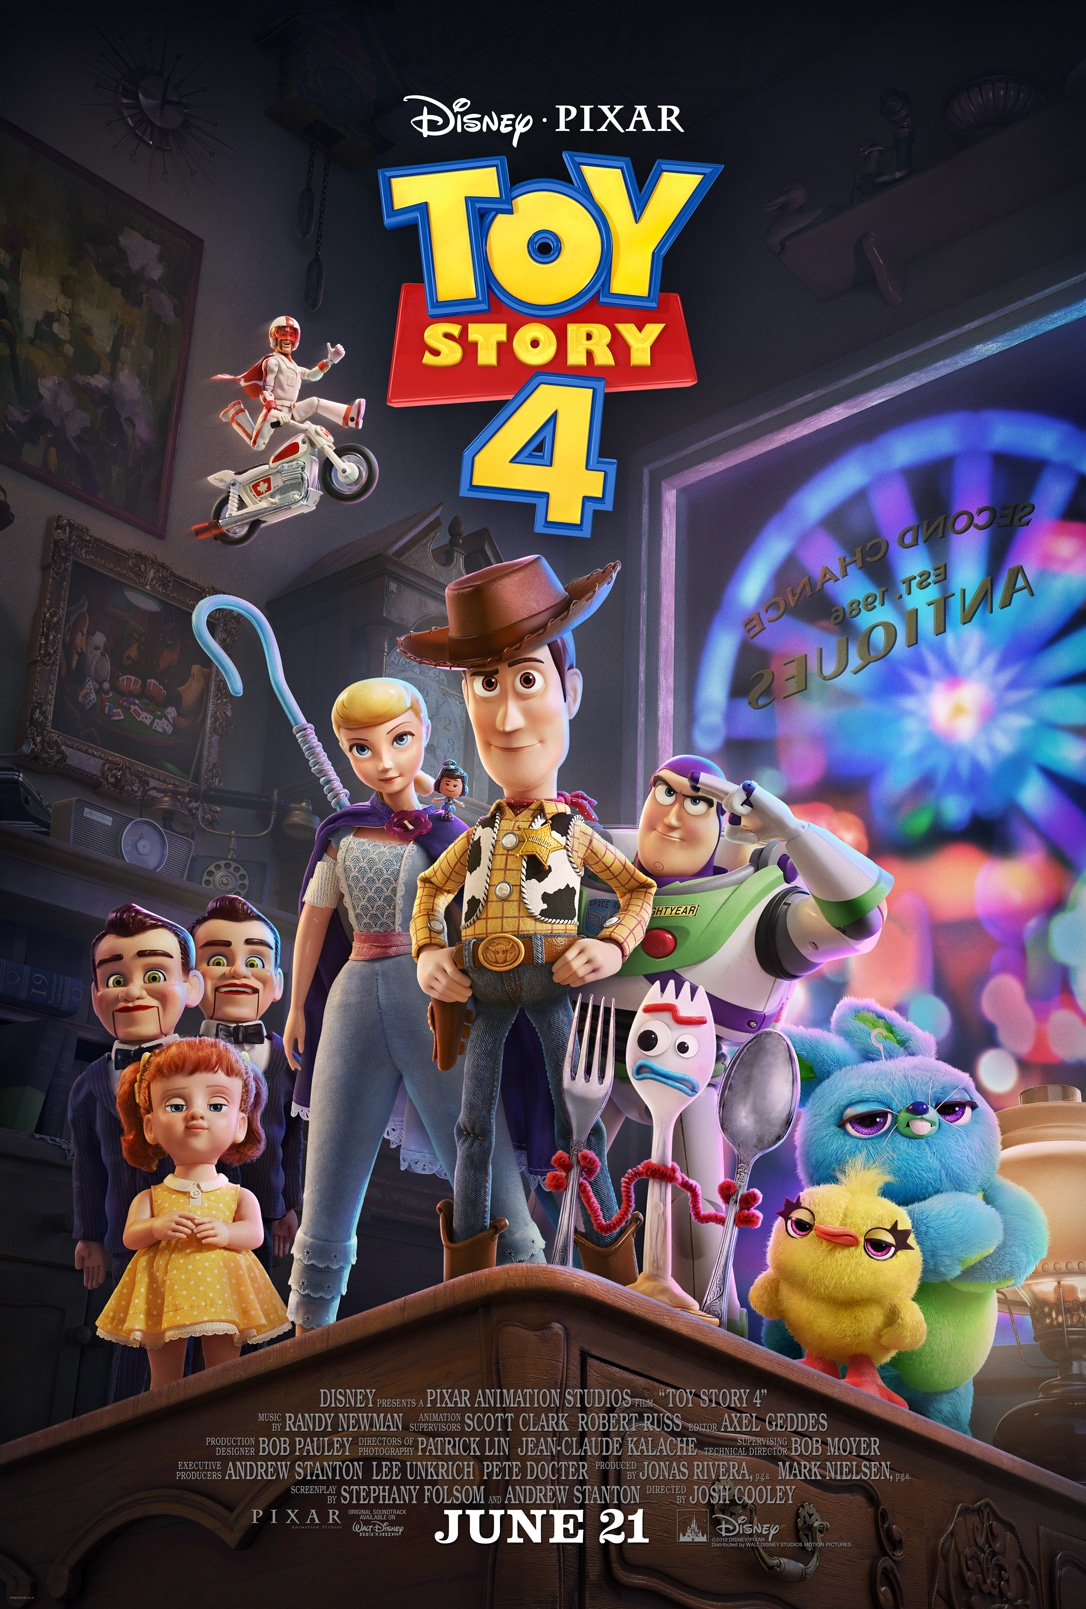 Toy Story 4 features a complex ensemble of animated characters.